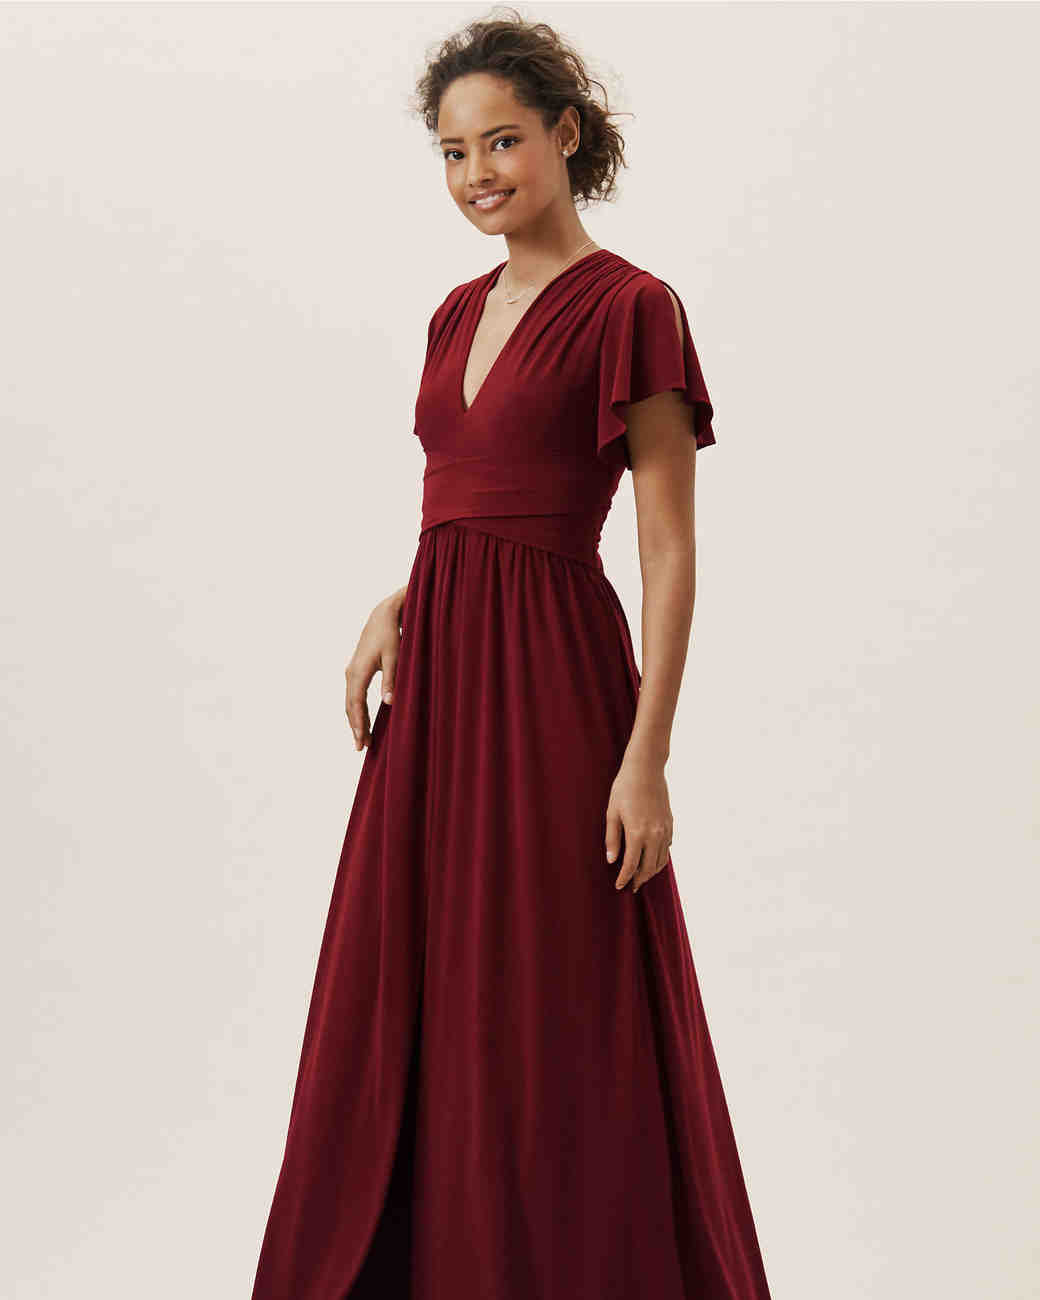 BHLDN Red Mendoza Bridesmaids Dress with Short Sleeves